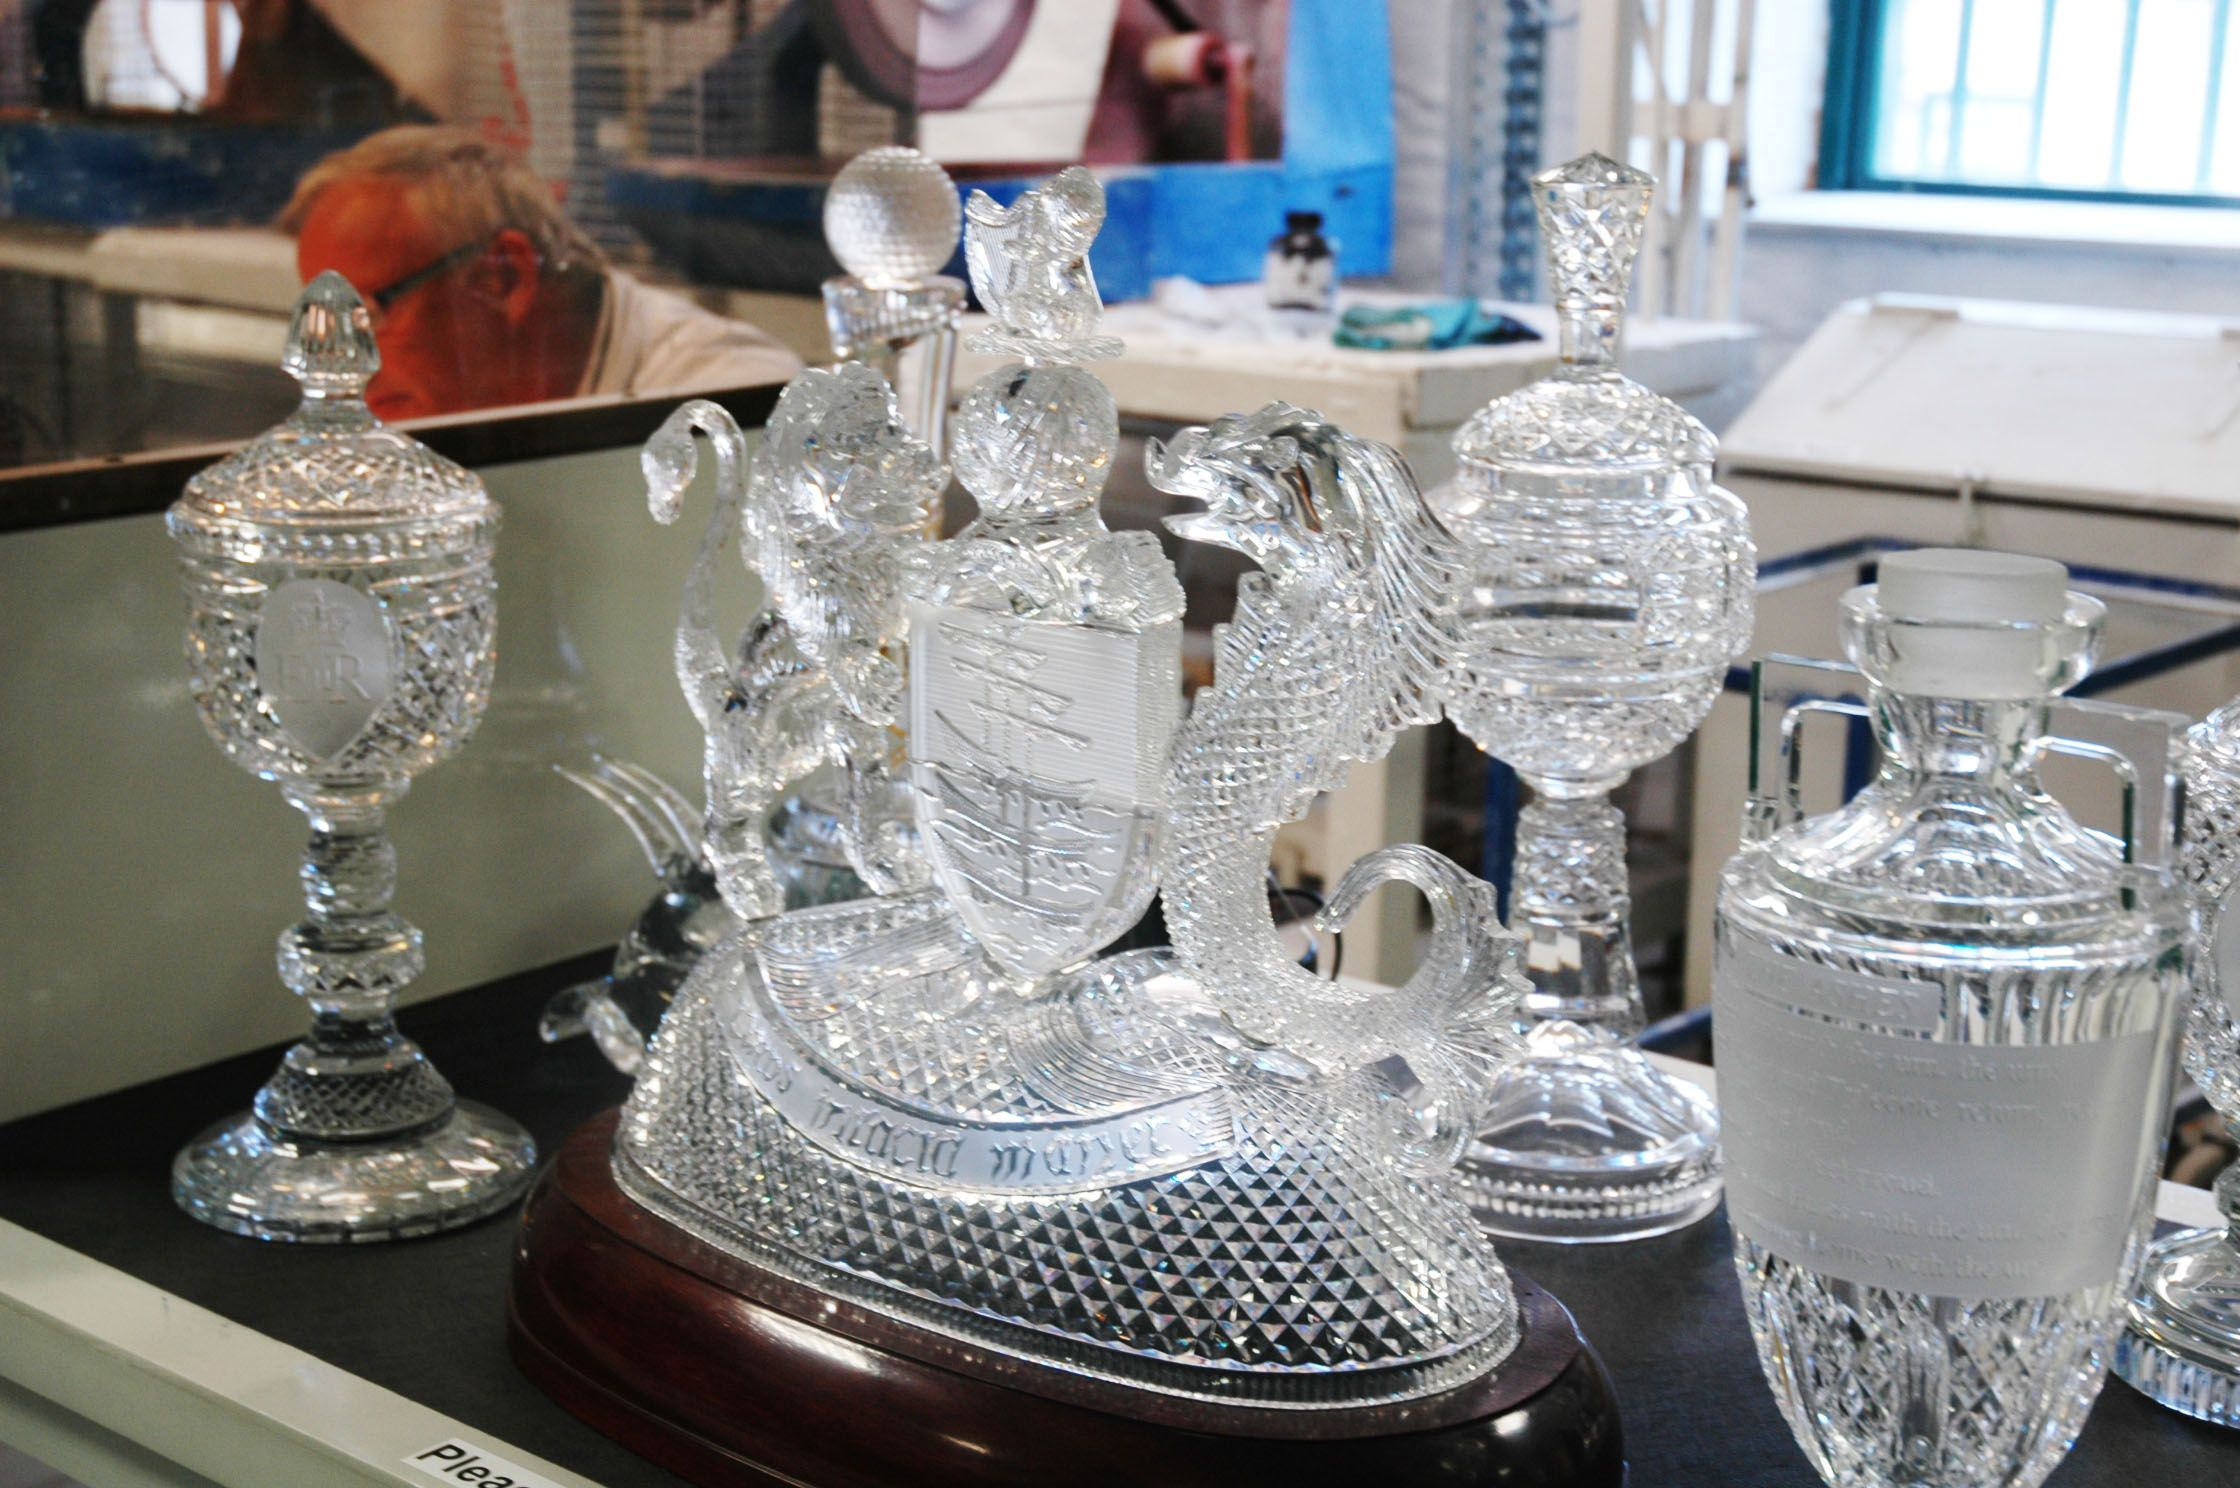 Waterford Crystal factory tour. Very interesting